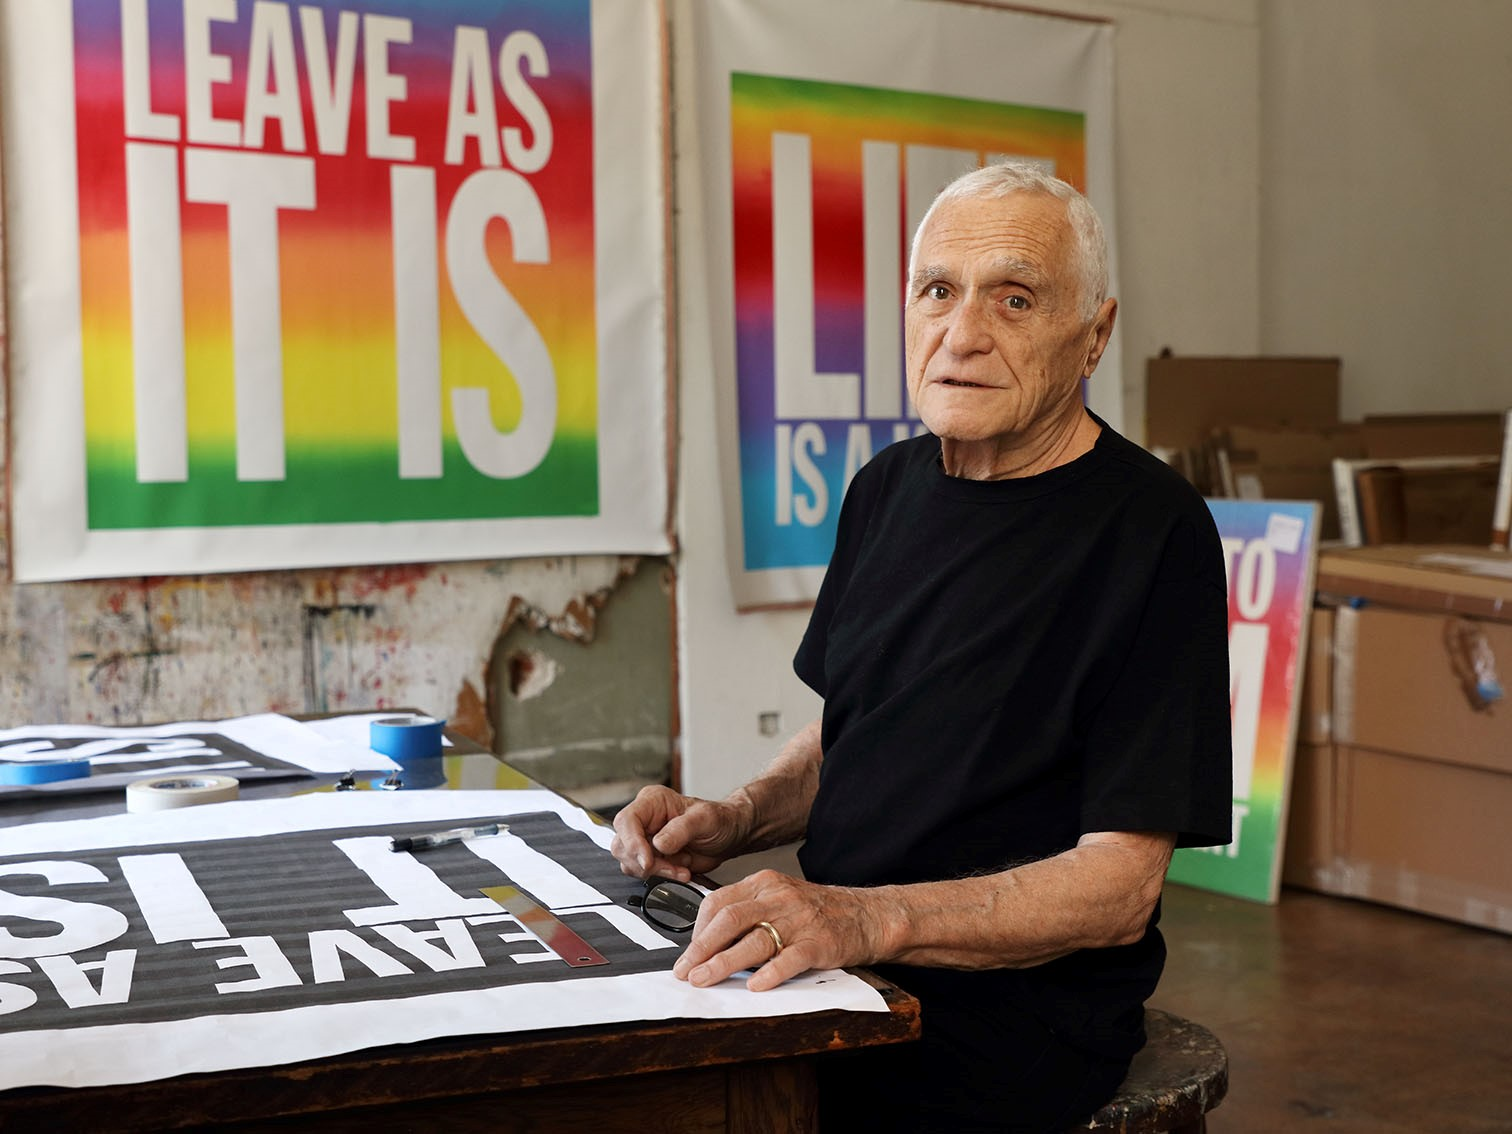 John Giorno, Storied Artist Who Expanded Poetry's Possibilities, Is Dead at 82 -